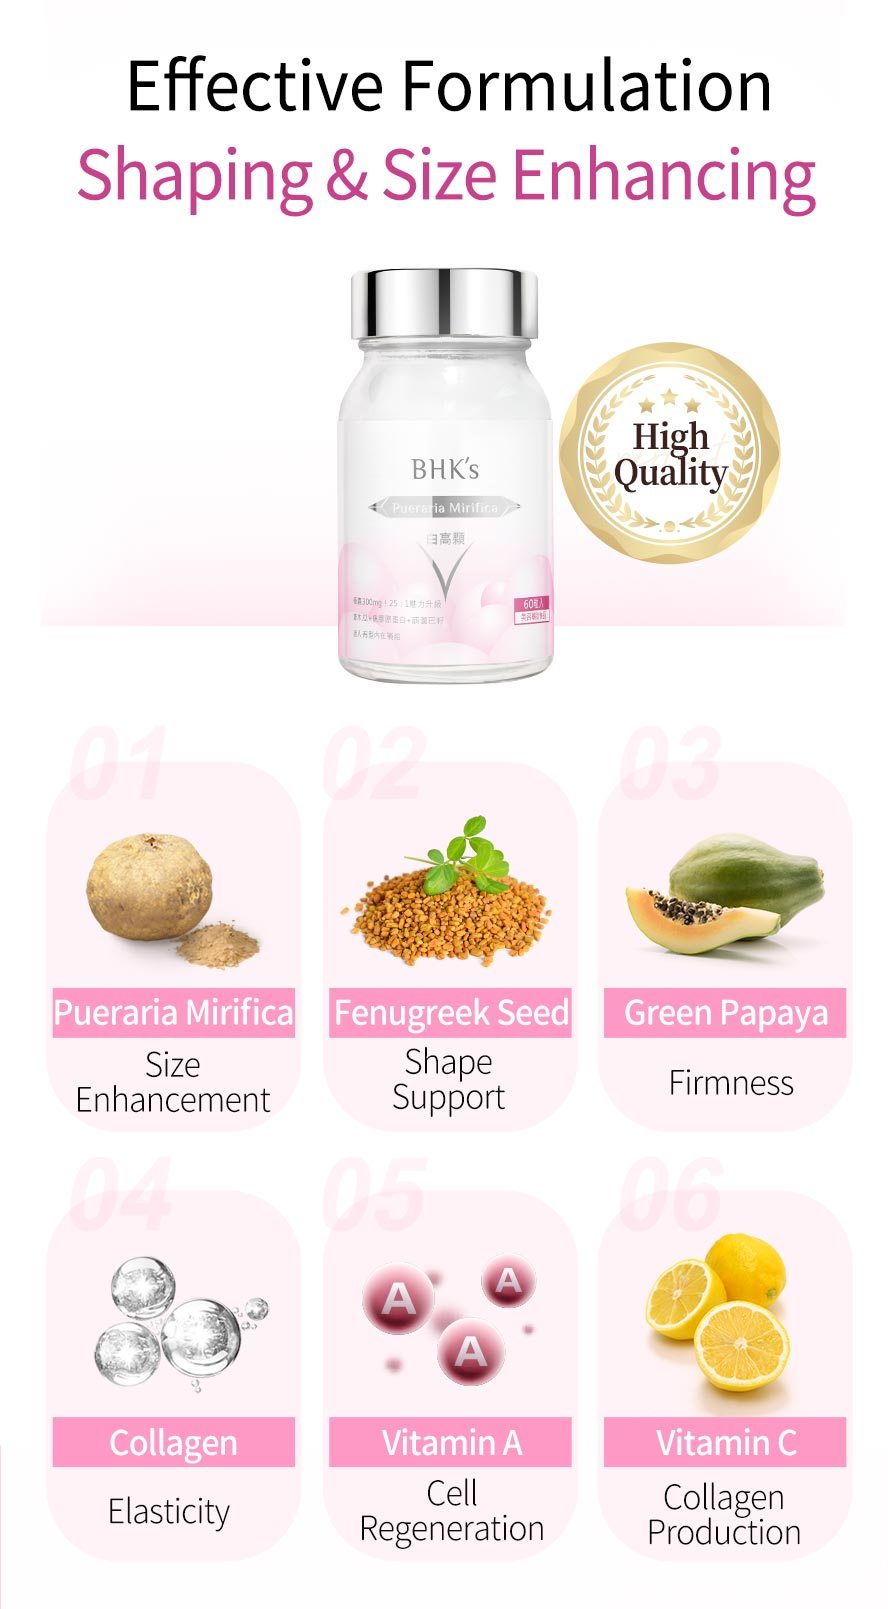 BHK Pueraria contains high level of isoflavones for female physiological function, and added fenugreek seed and collagen for boobs firmness.